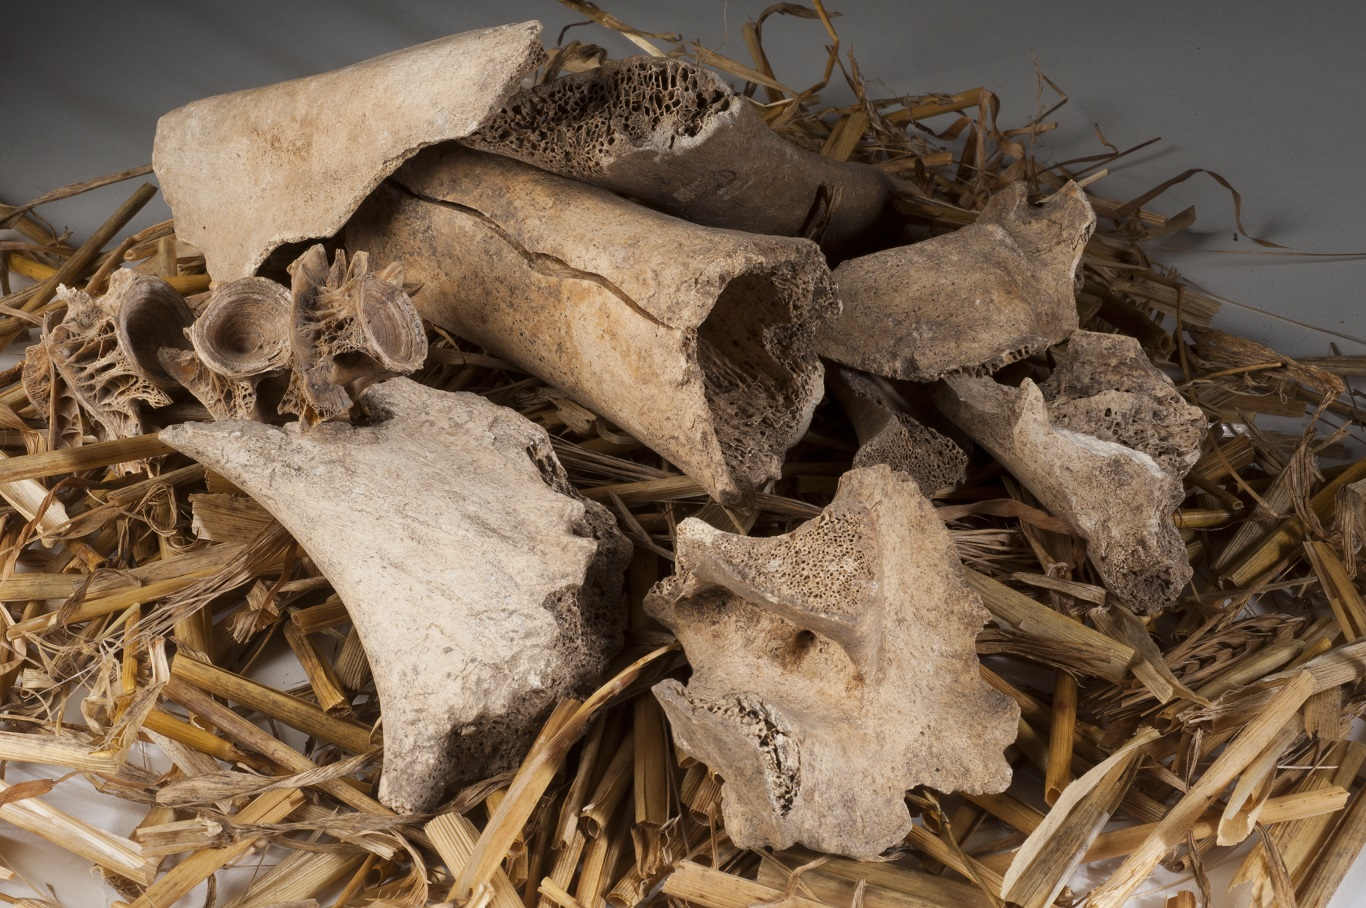 A pile of animal bone fragments found at Urquhart Castle.